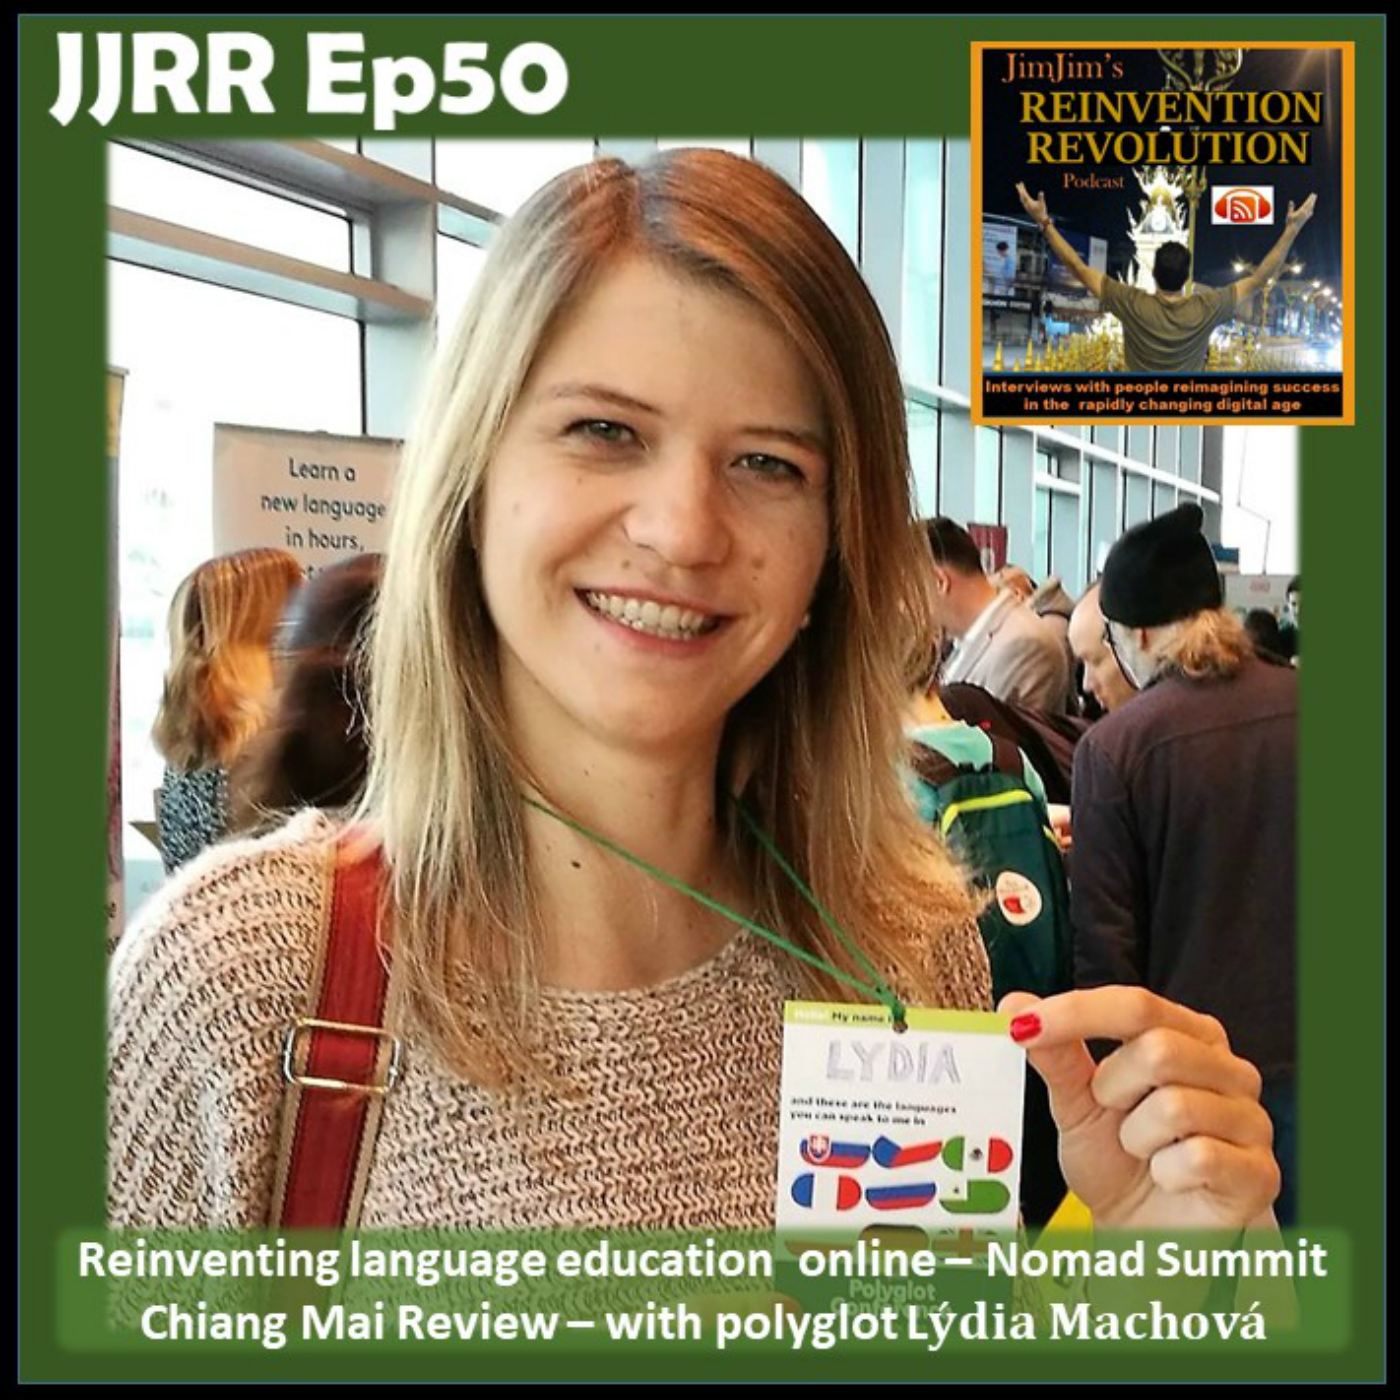 JJRR Ep50 Reinventing language education online – Nomad Summit Chiang Mai Review – with polyglot Ly ́dia Machova ́